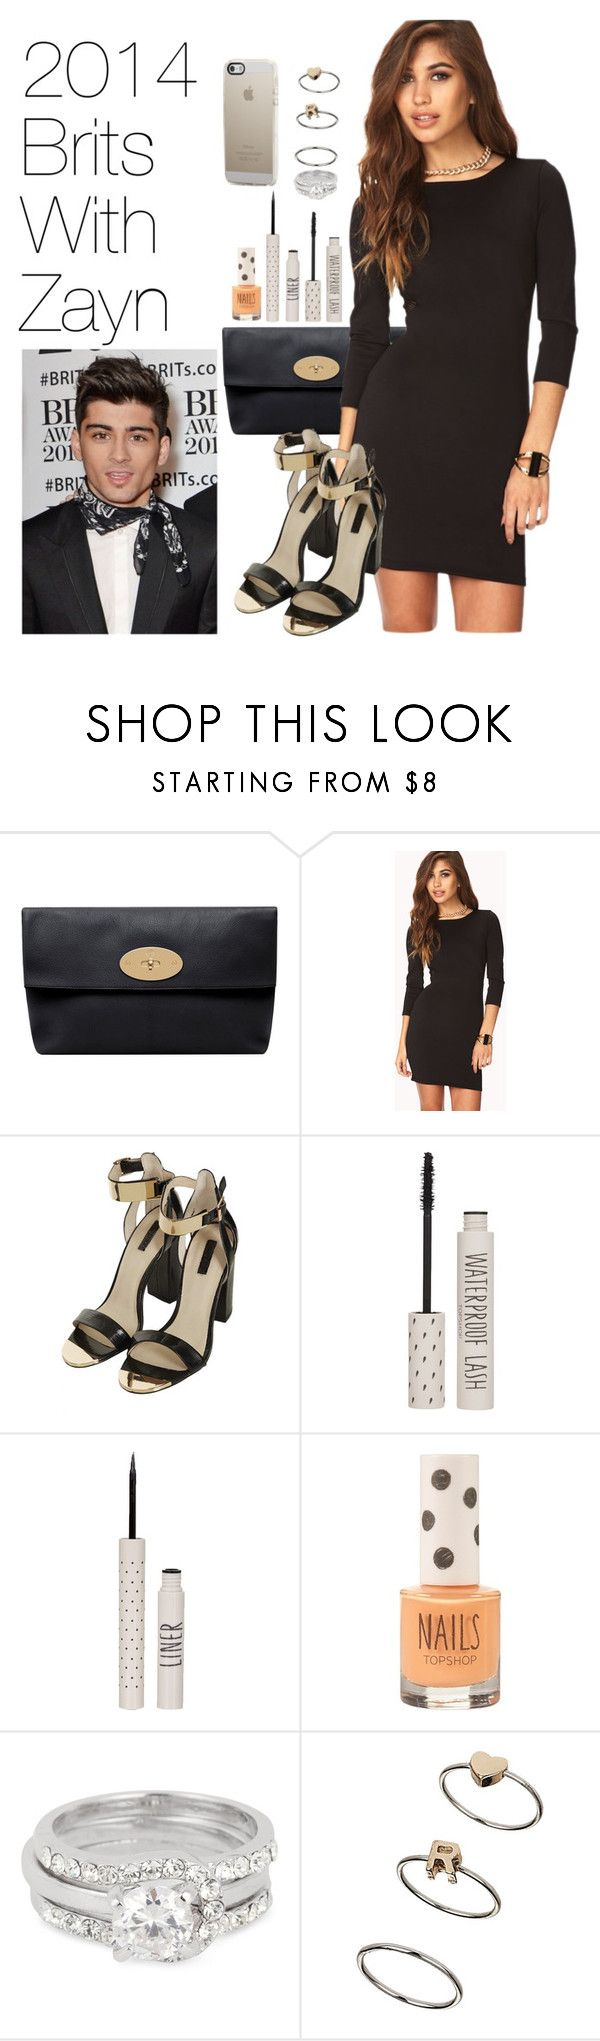 """""""2014 Brits With Zayn"""" by onedirectionimagineoutfits99 ❤ liked on Polyvore featuring Mulberry, Forever 21, Topshop and Jon Richard"""